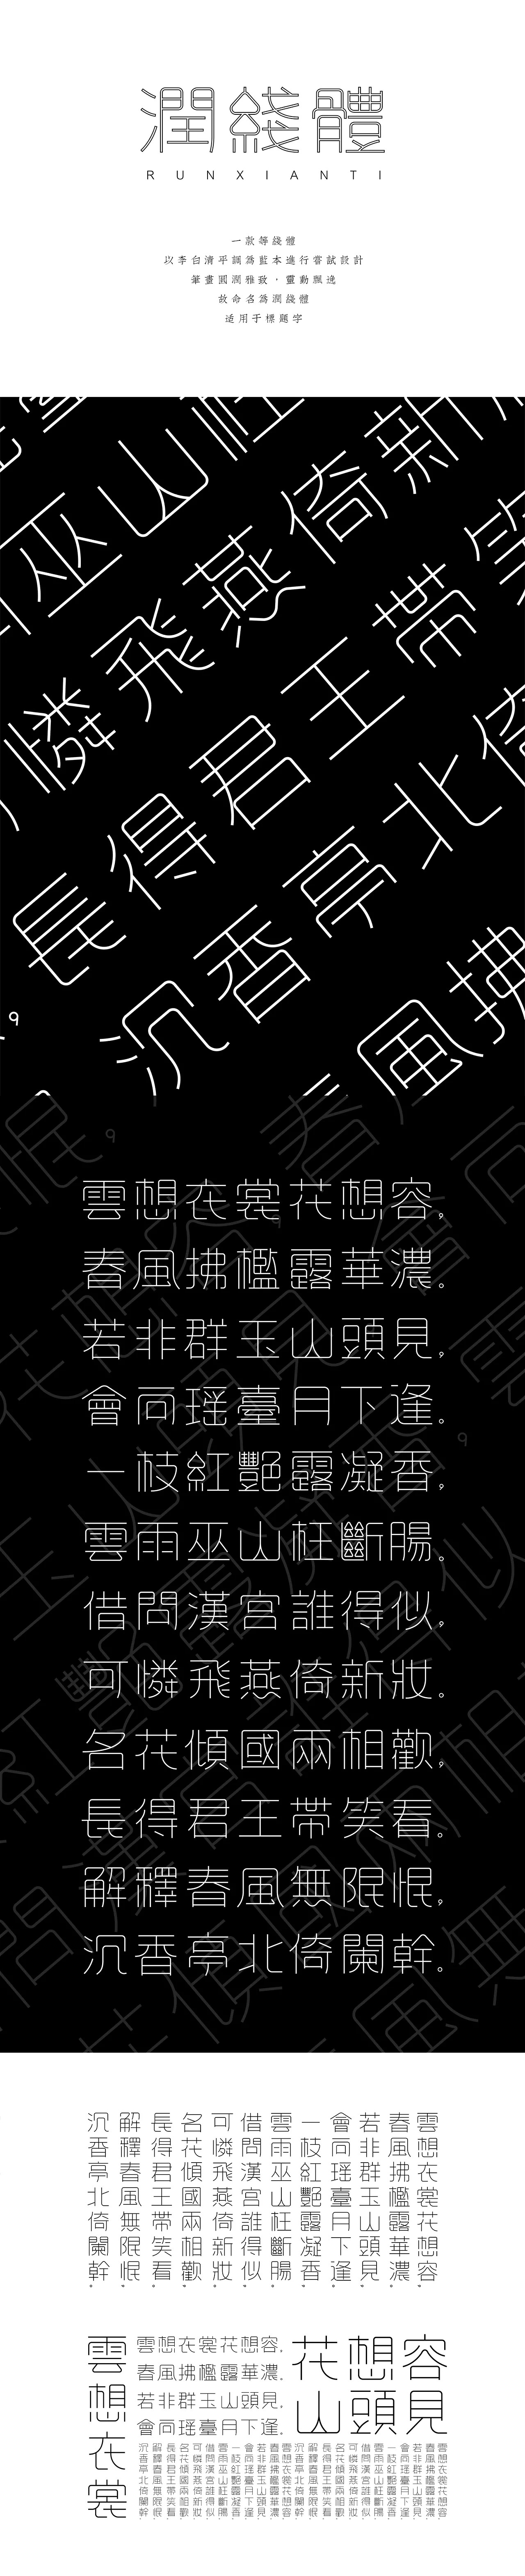 chinesefontdesign.com 2018 02 27 10 40 14 158456 Design and application of Chinese trend font